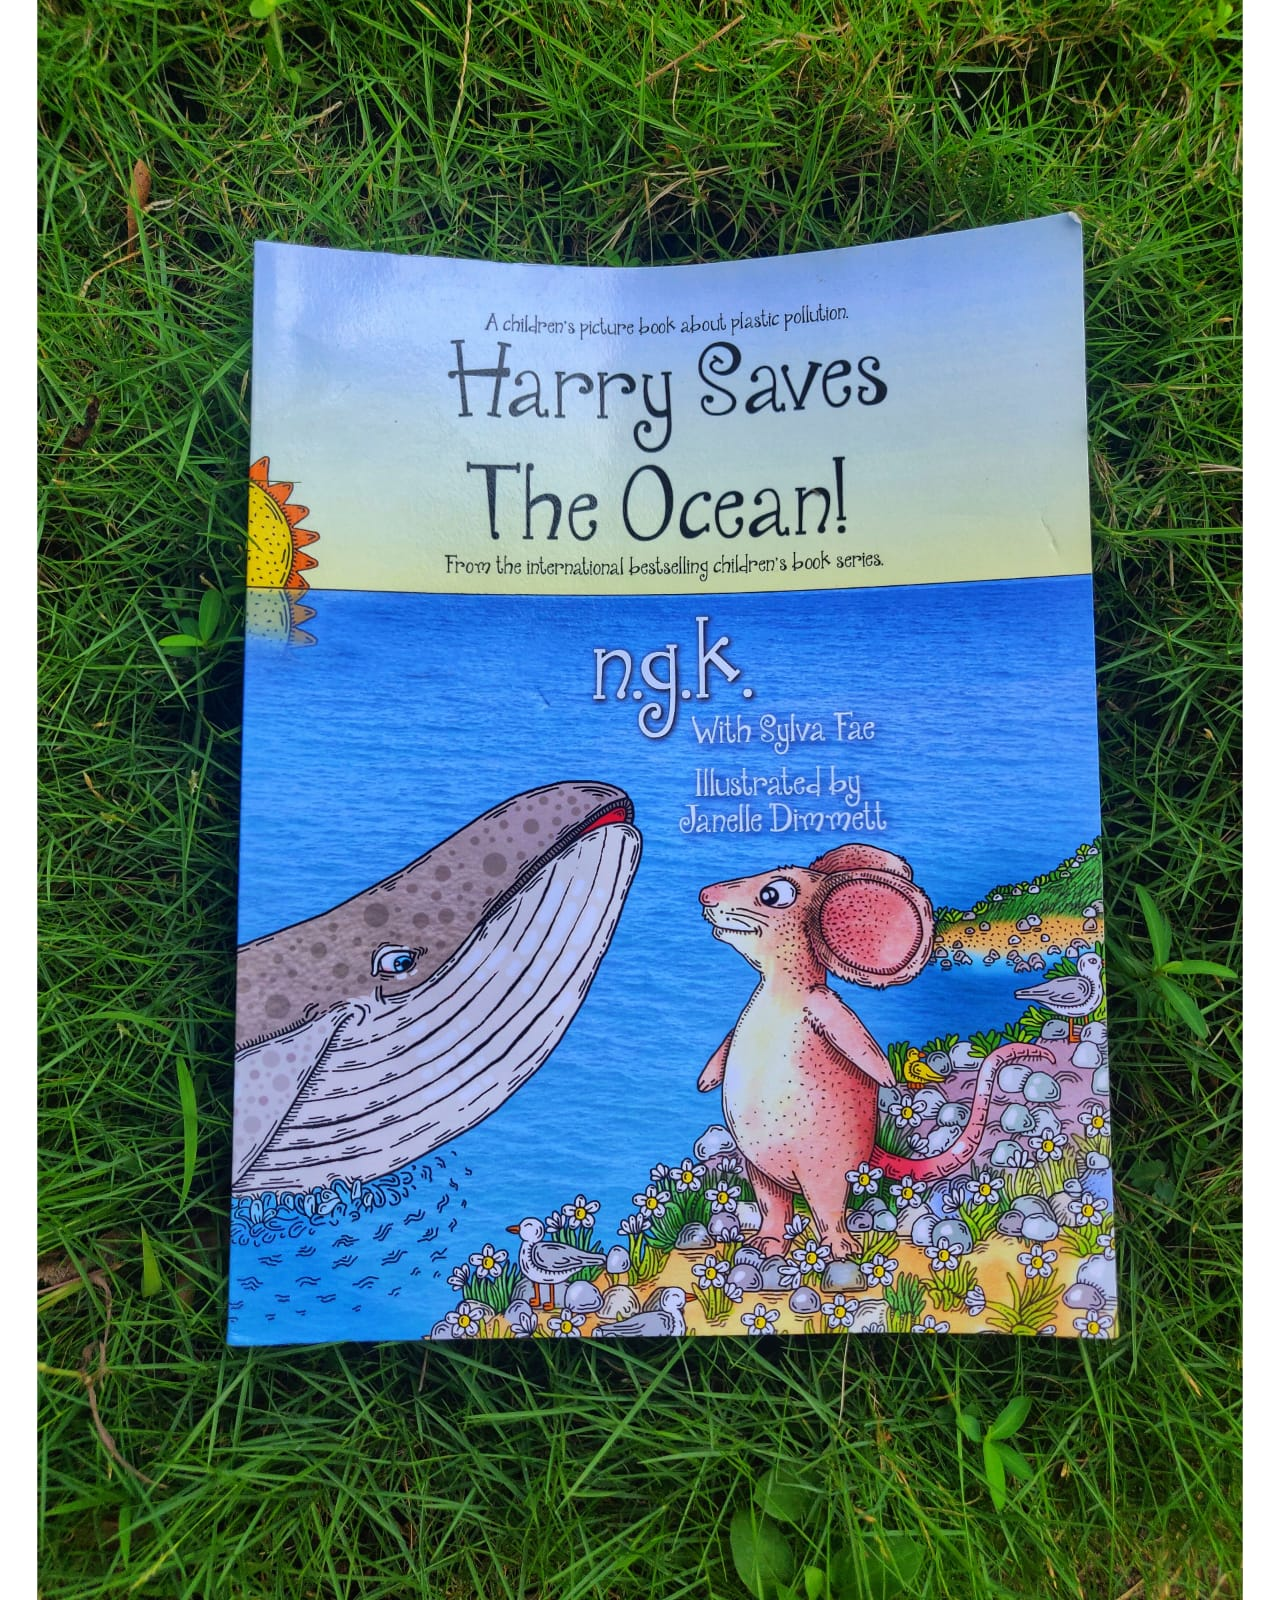 Review: Harry Saves The Ocean!